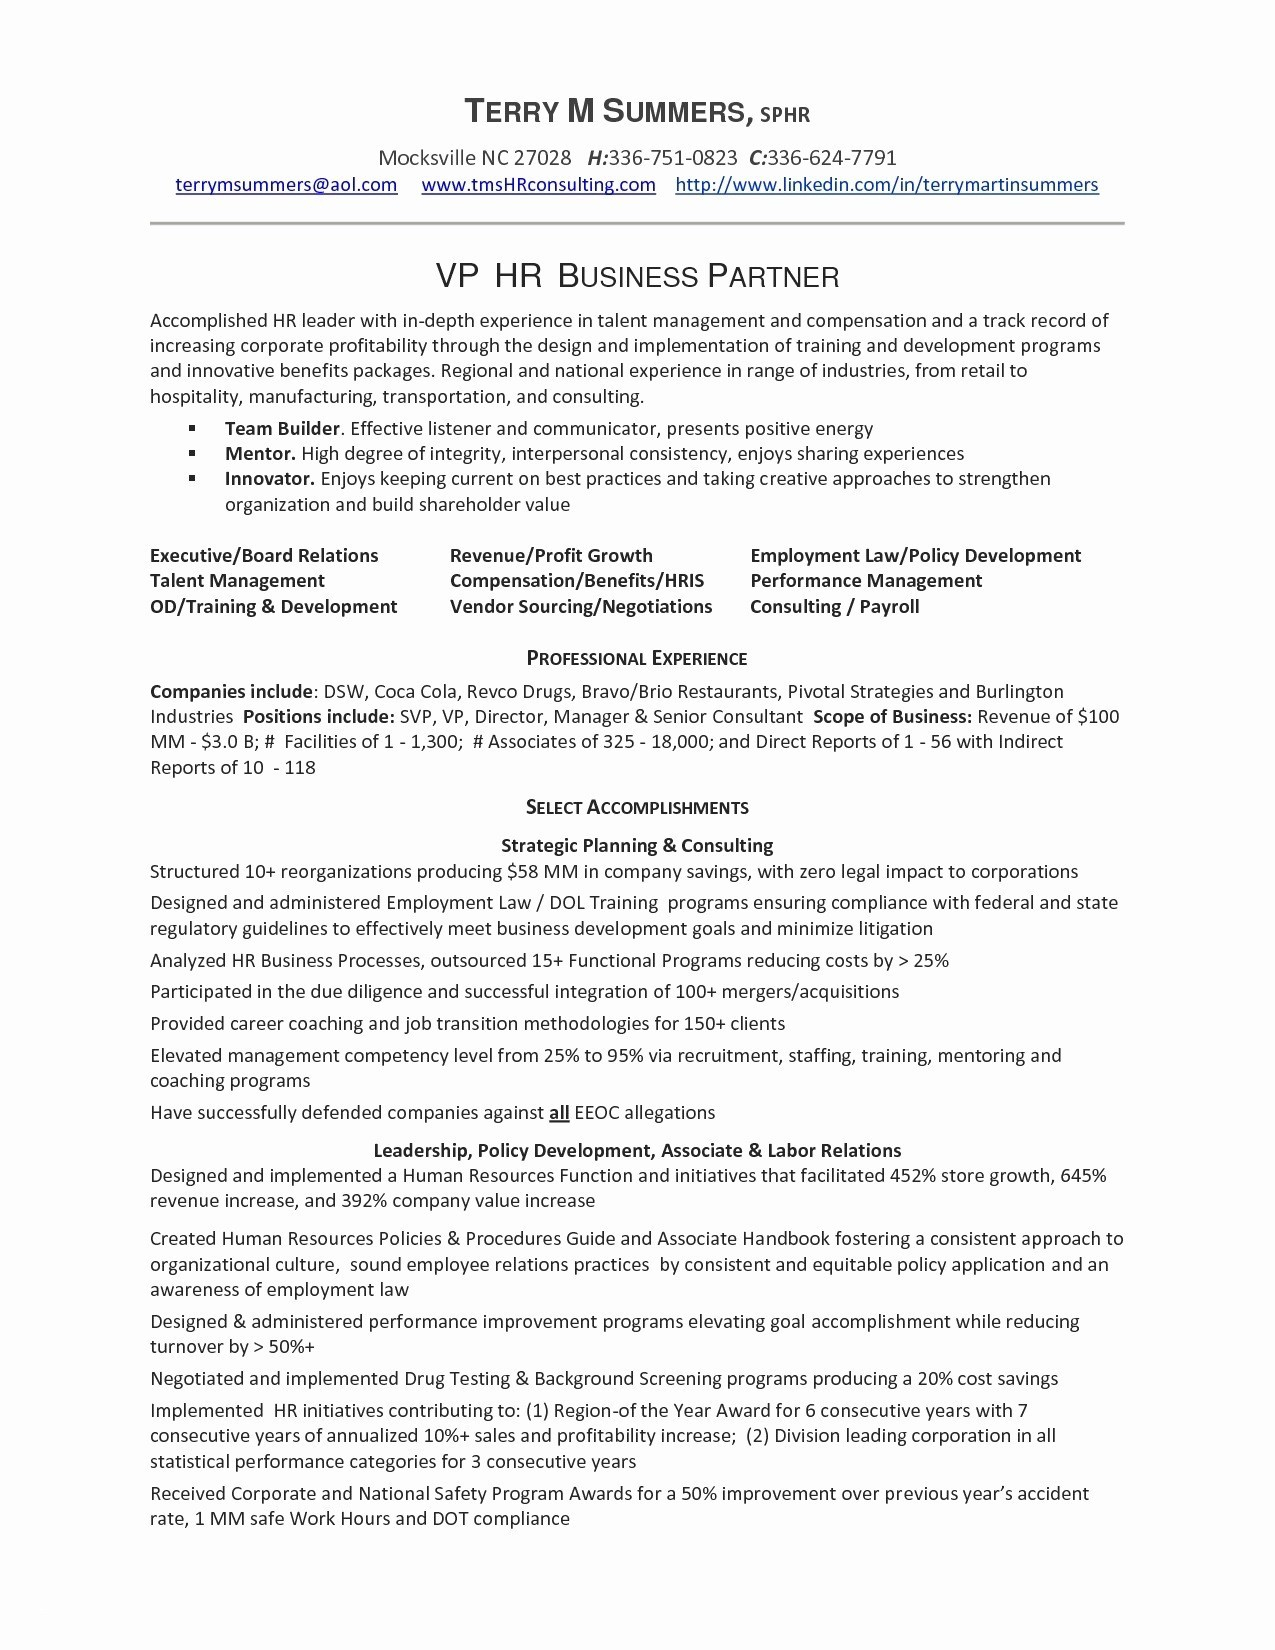 business analyst resume sample pdf Collection-Business Analyst Resume Sample Pdf 14-l